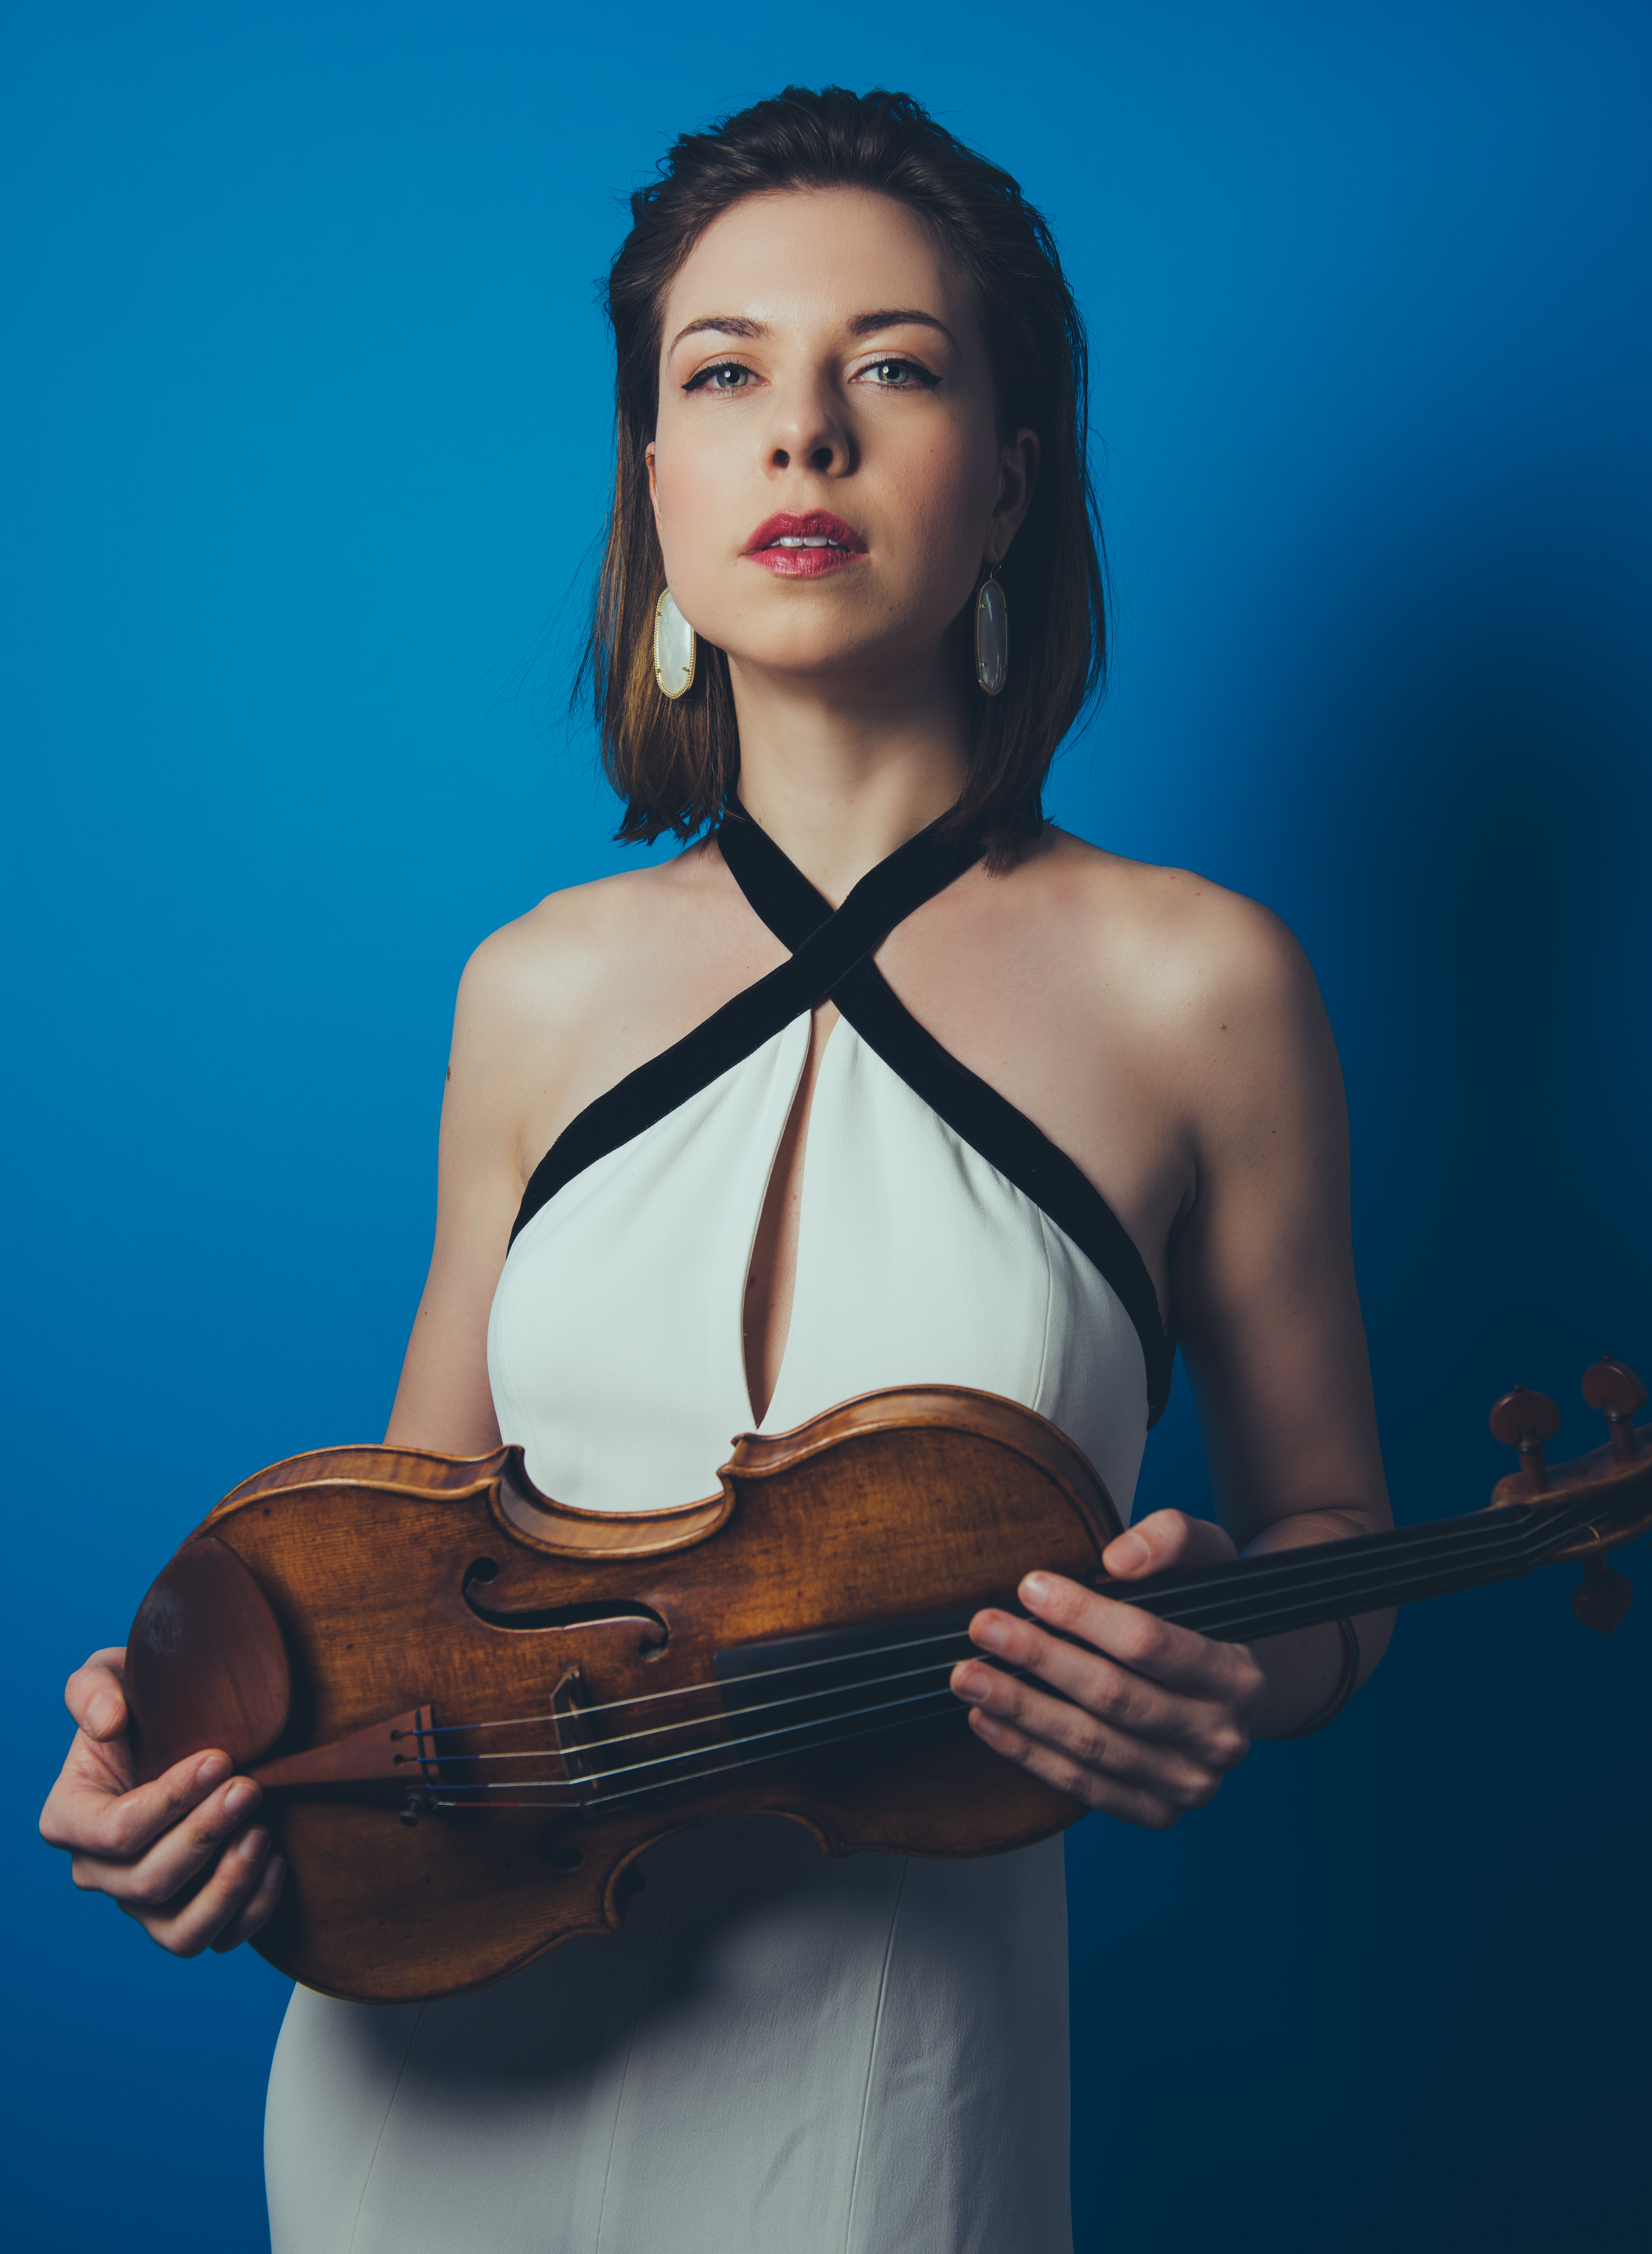 West Virginia Symphony Orchestra: Violin or Fiddle?